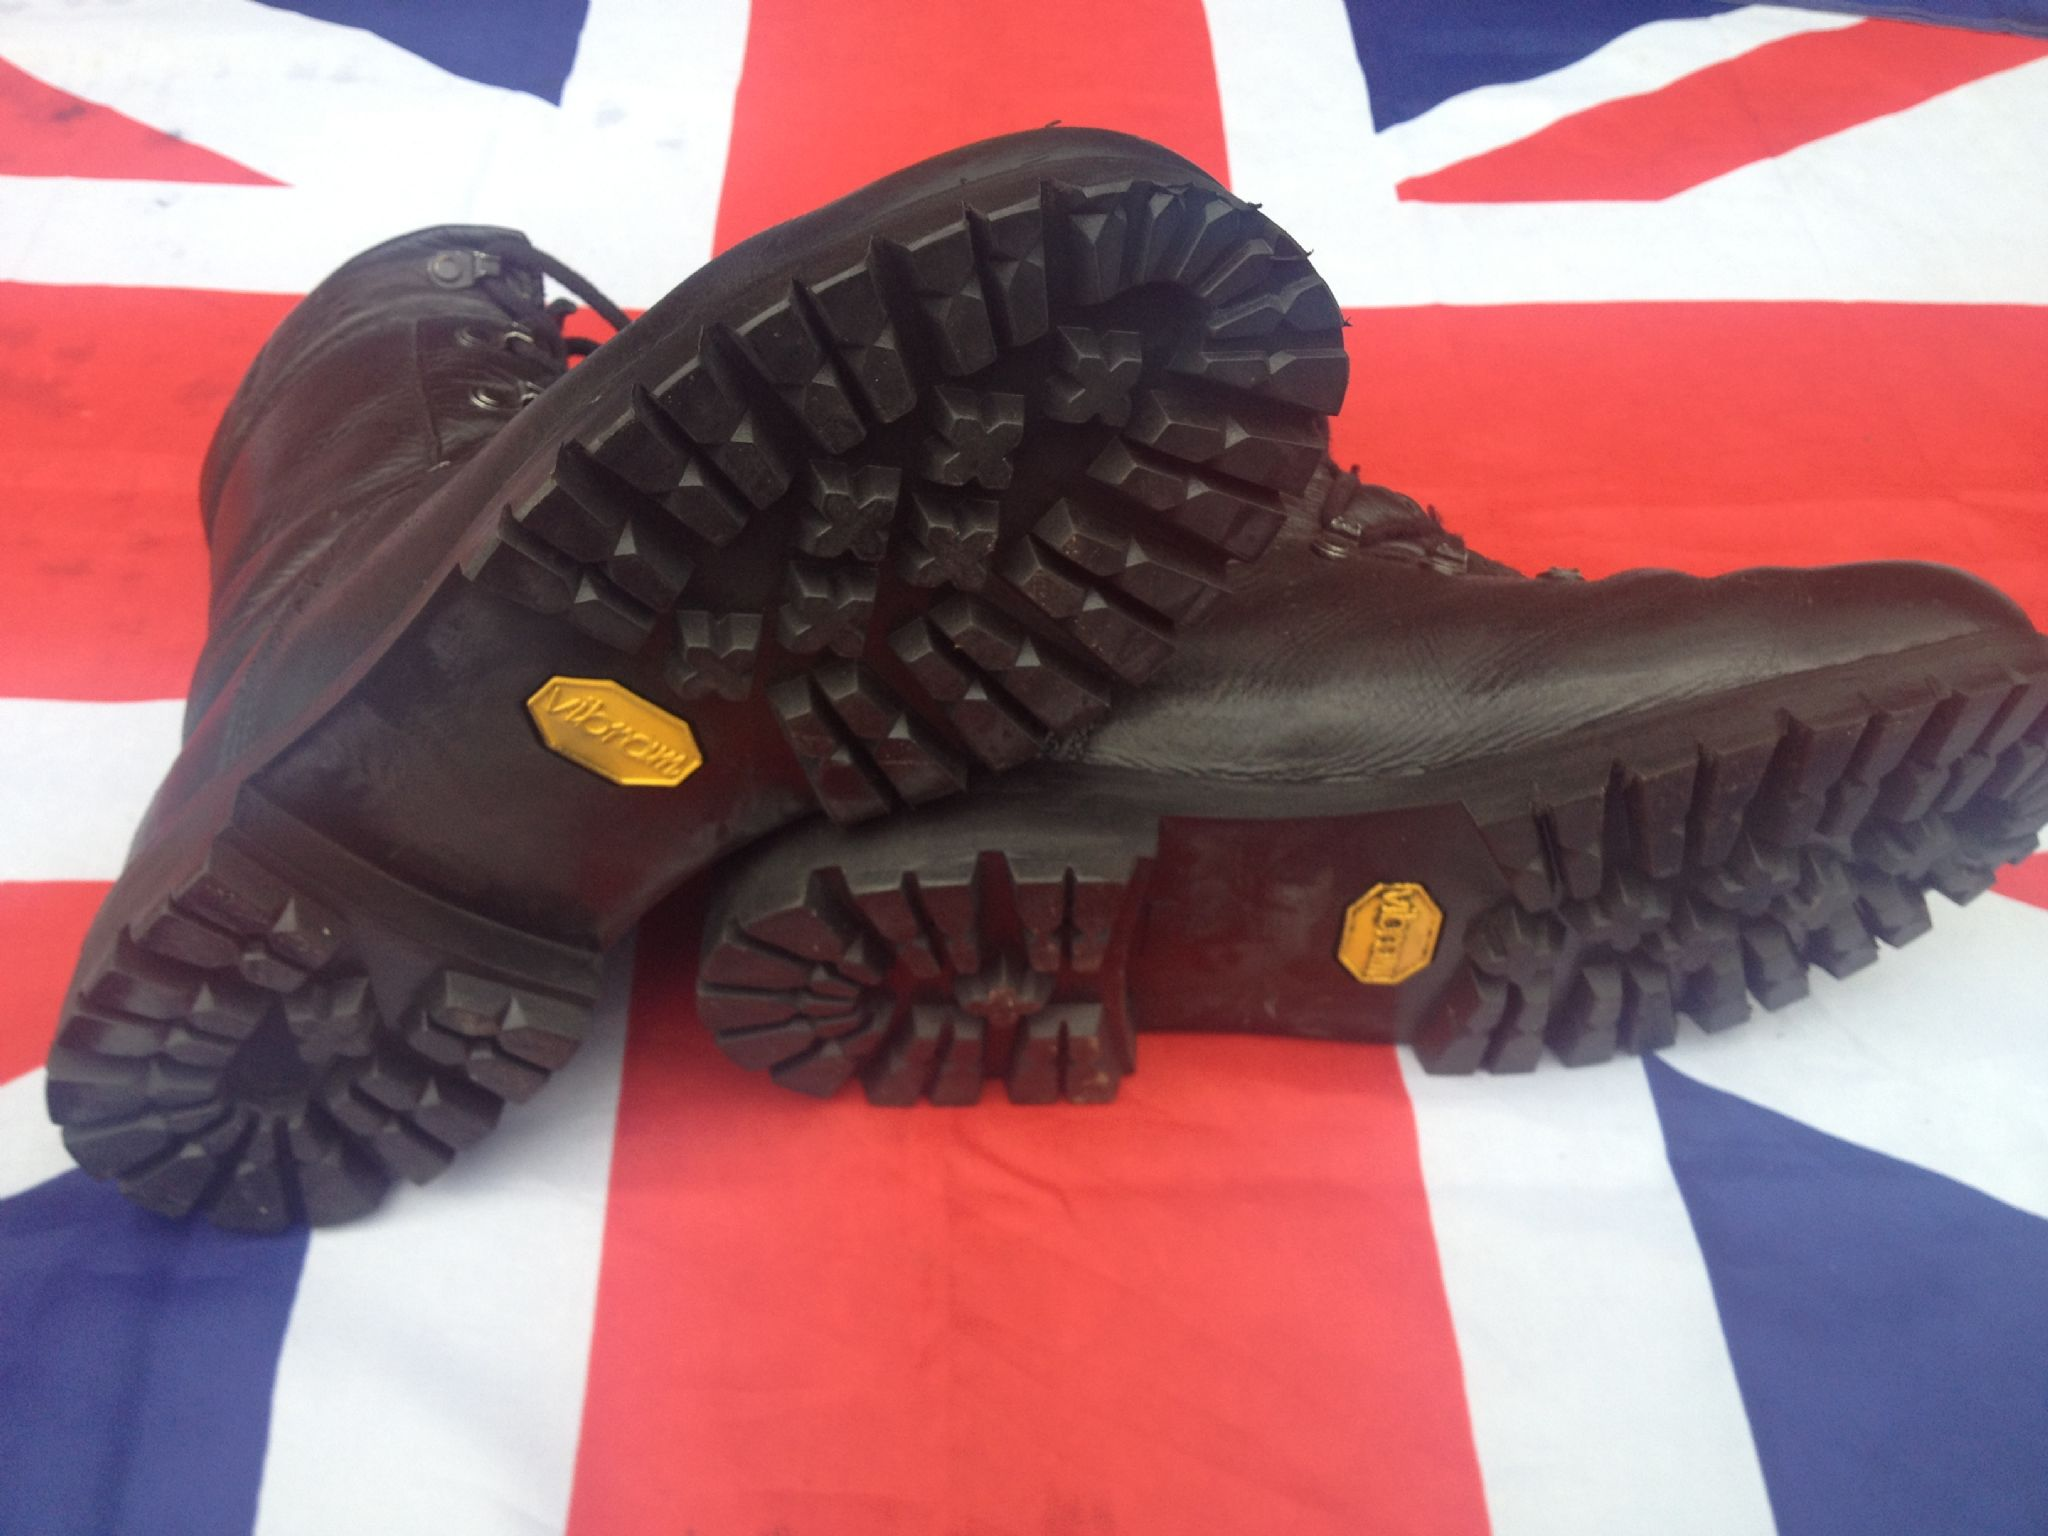 GERMAN PARA BOOTS MK4 GRADE 1 WITH NEW VIBRAM SOLE FITTED